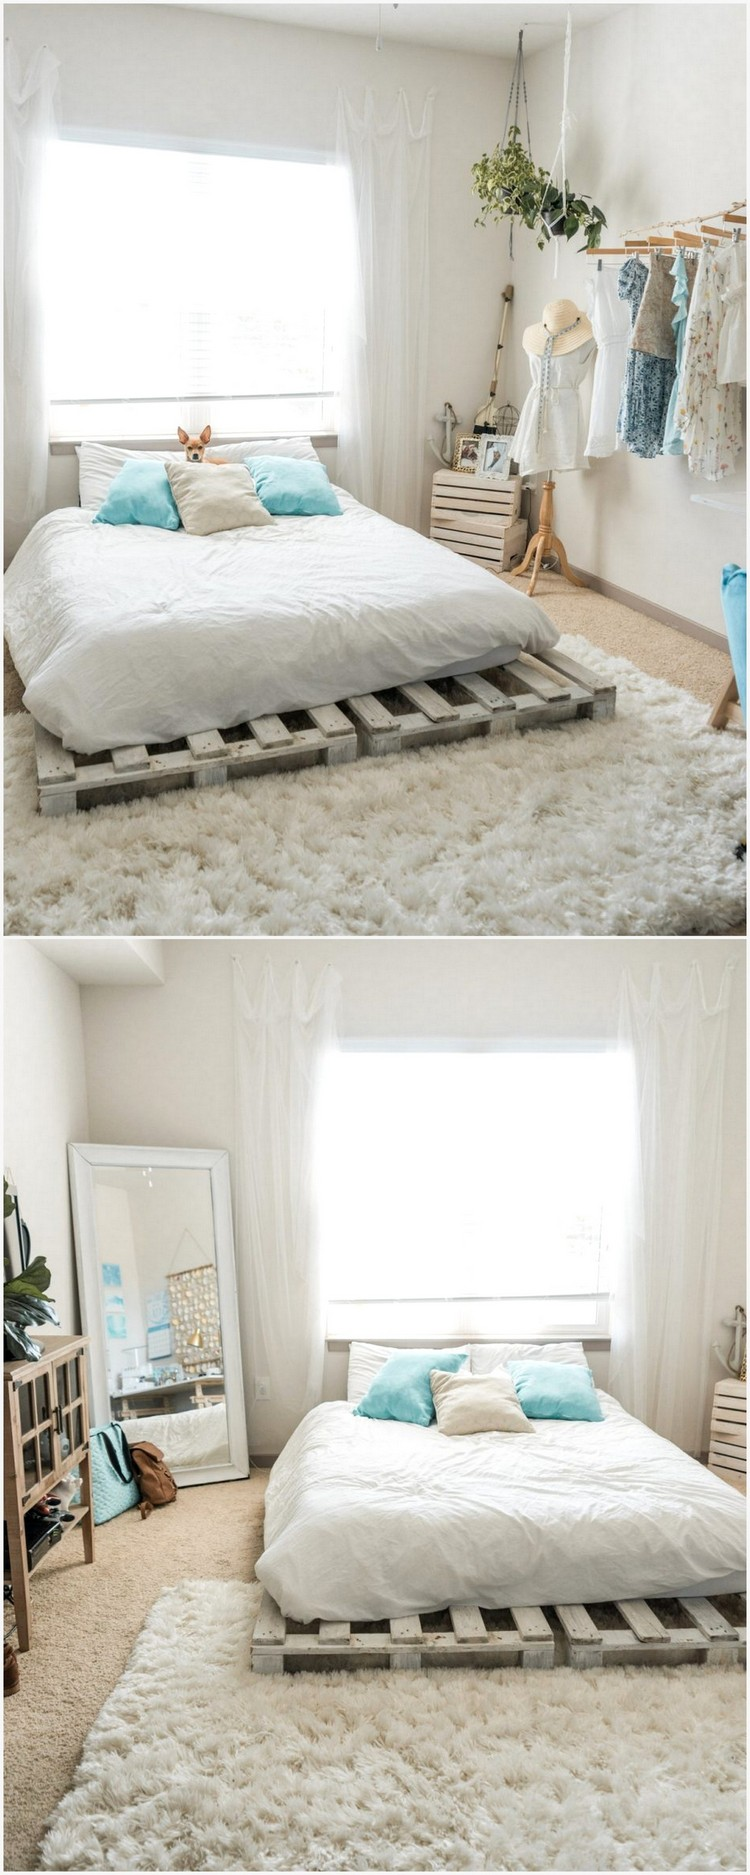 Gorgeous DIY bedroom Ideas - How To Make DIY Inspirations